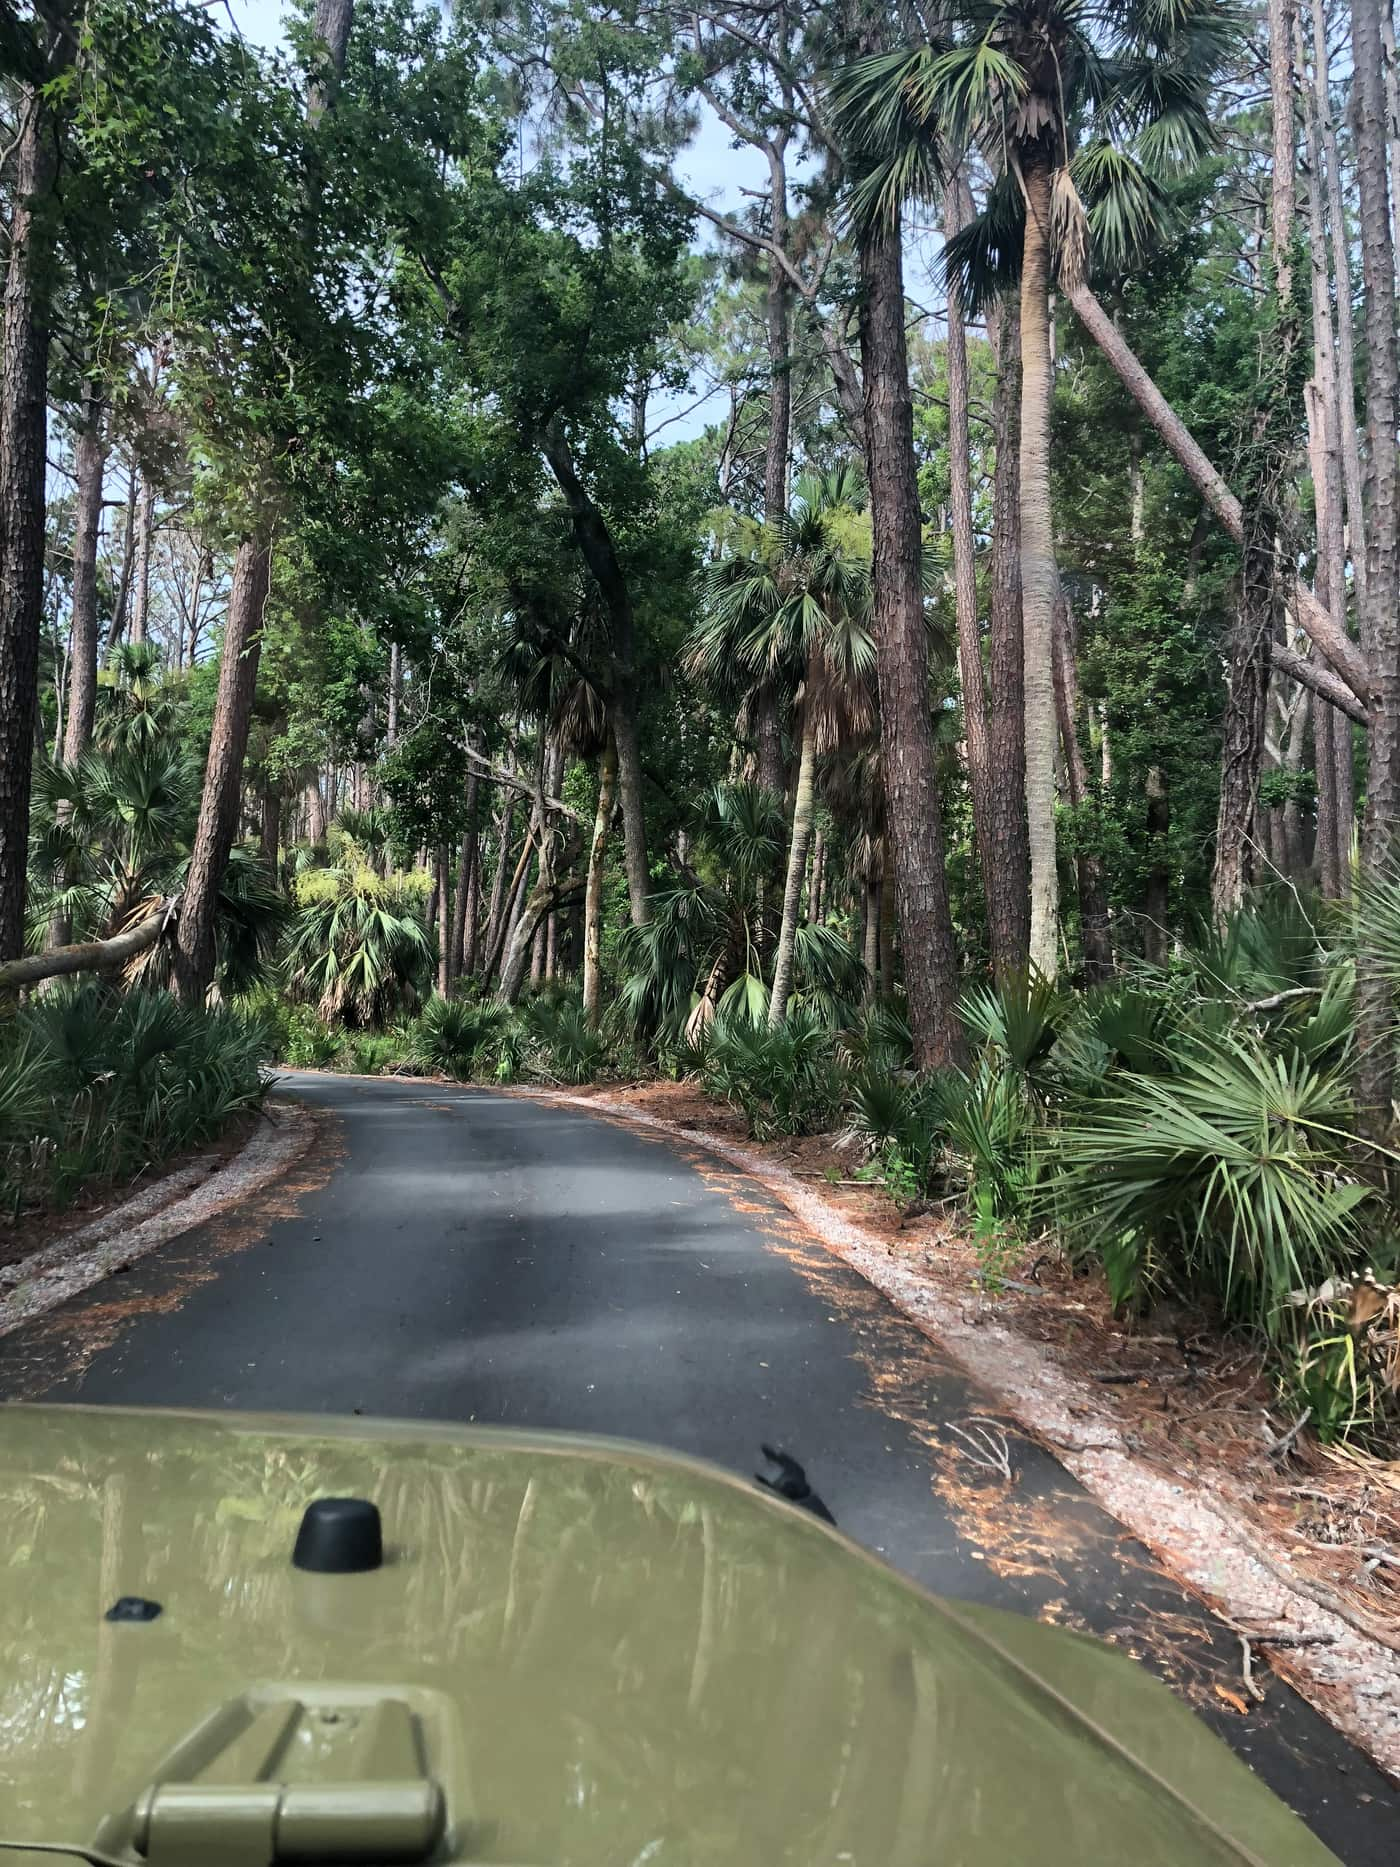 Image through the windshield of a green Jeep of a road surrounded by palms and ferns.